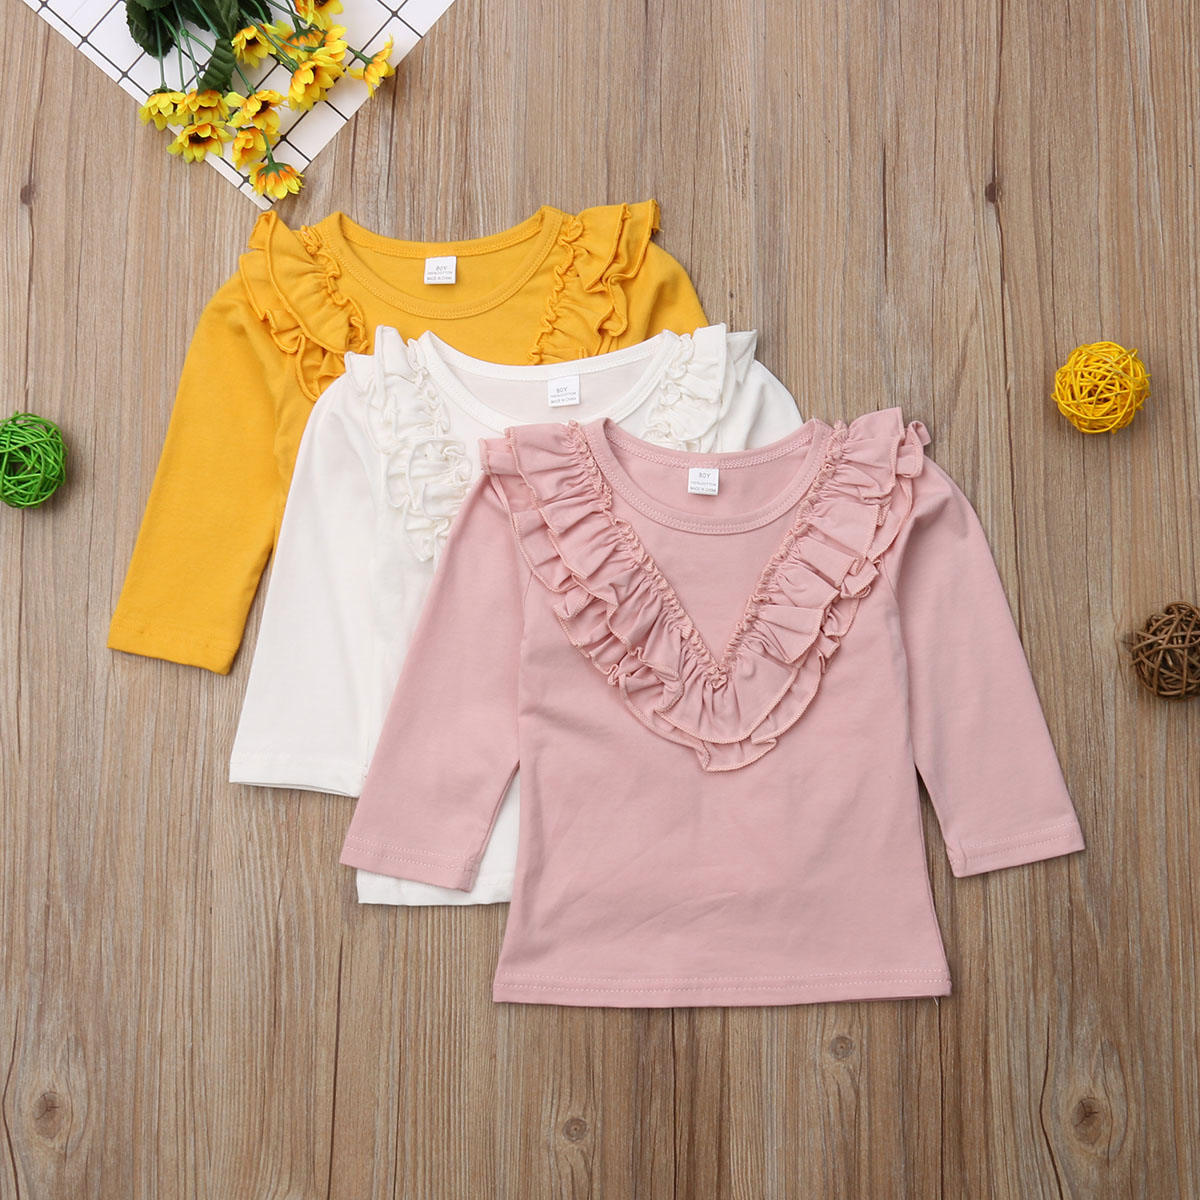 PUDCOCO Baby Girls Cotton Long Sleeve T-shirt 0-5 Year